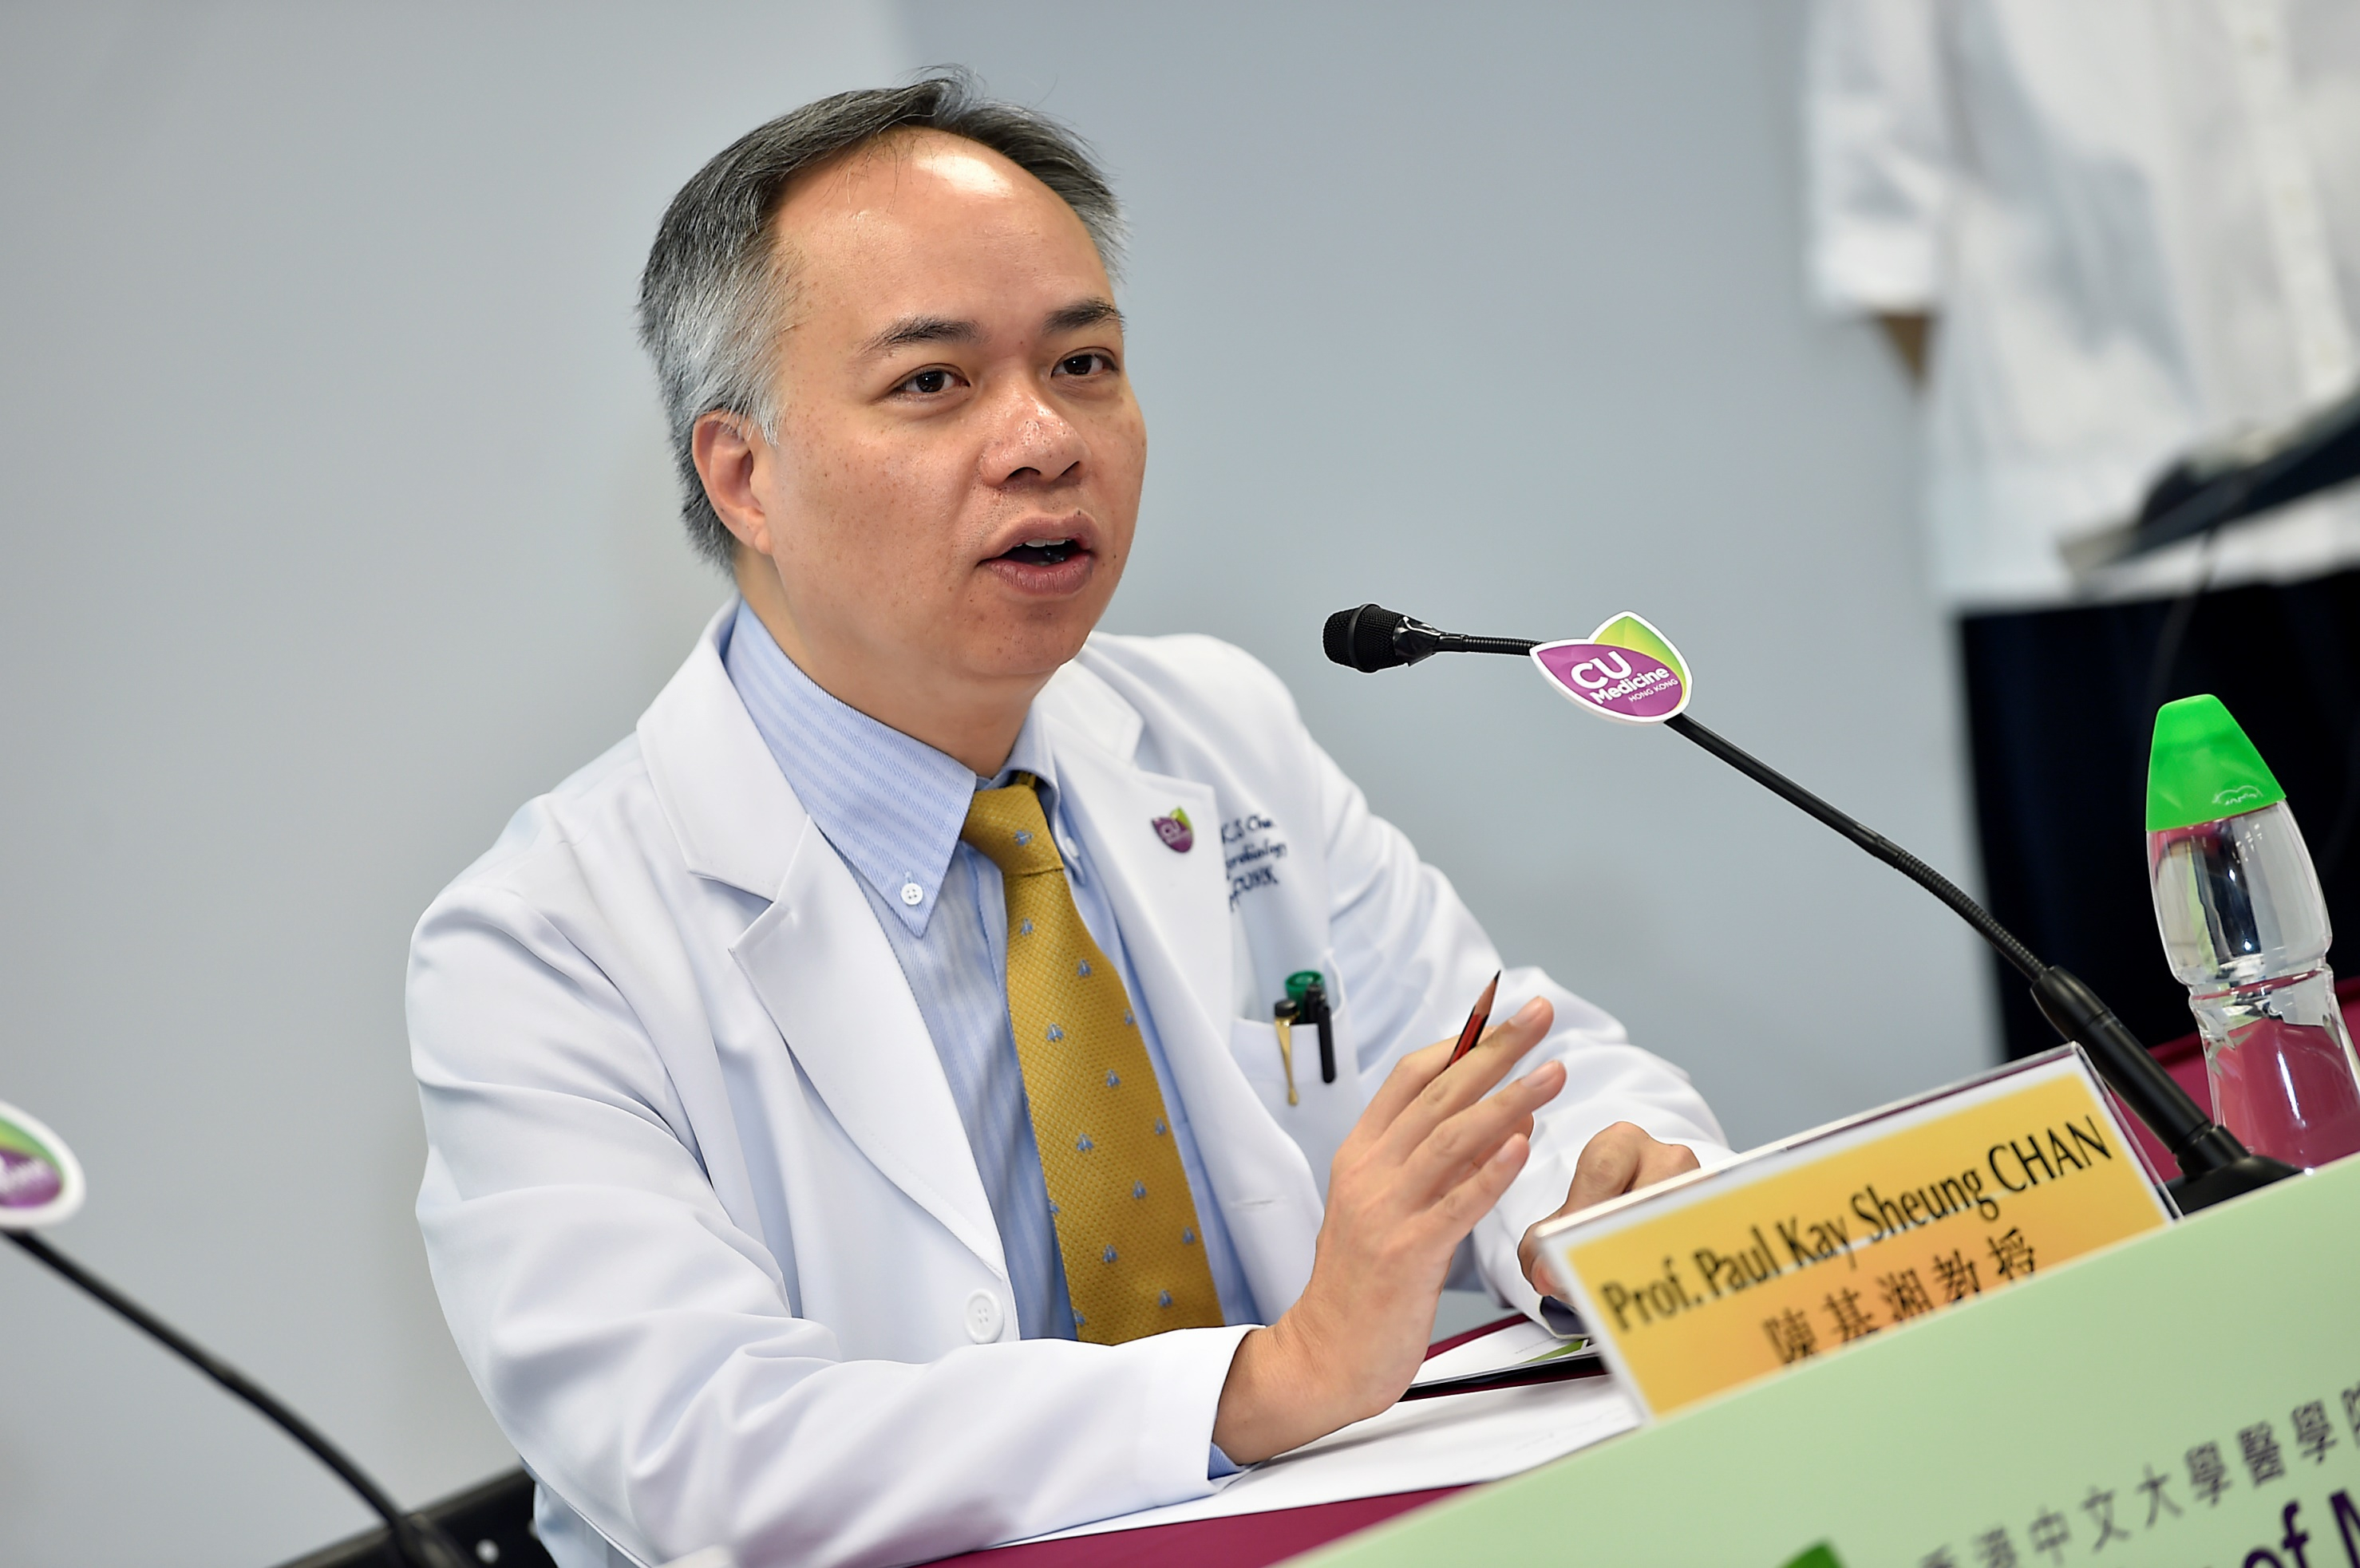 Professor Paul CHAN emphasises that the health requirements on stool donors are stricter than those for blood or organ donors.